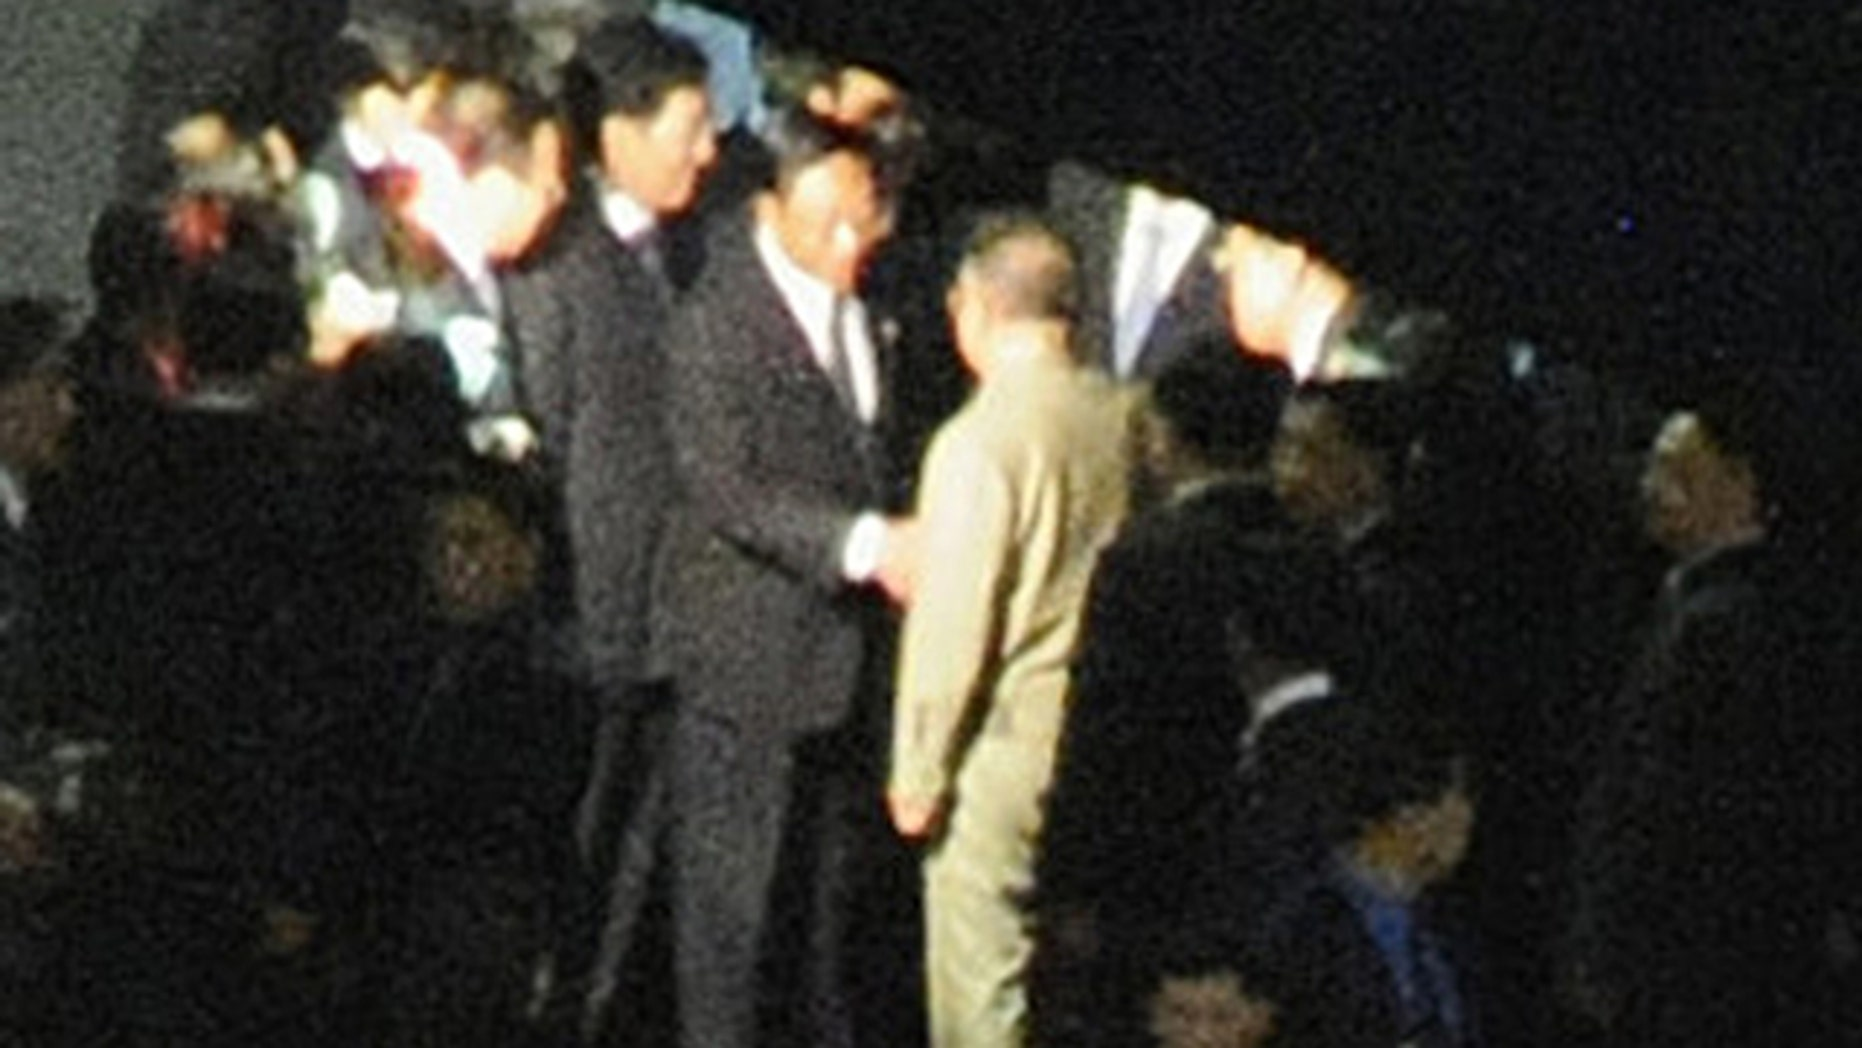 Aug. 28: A man, believed to be North Korean leader Kim Jong Il, center facing away from camera, is greeted at Changchun rail station in Changchun, China.